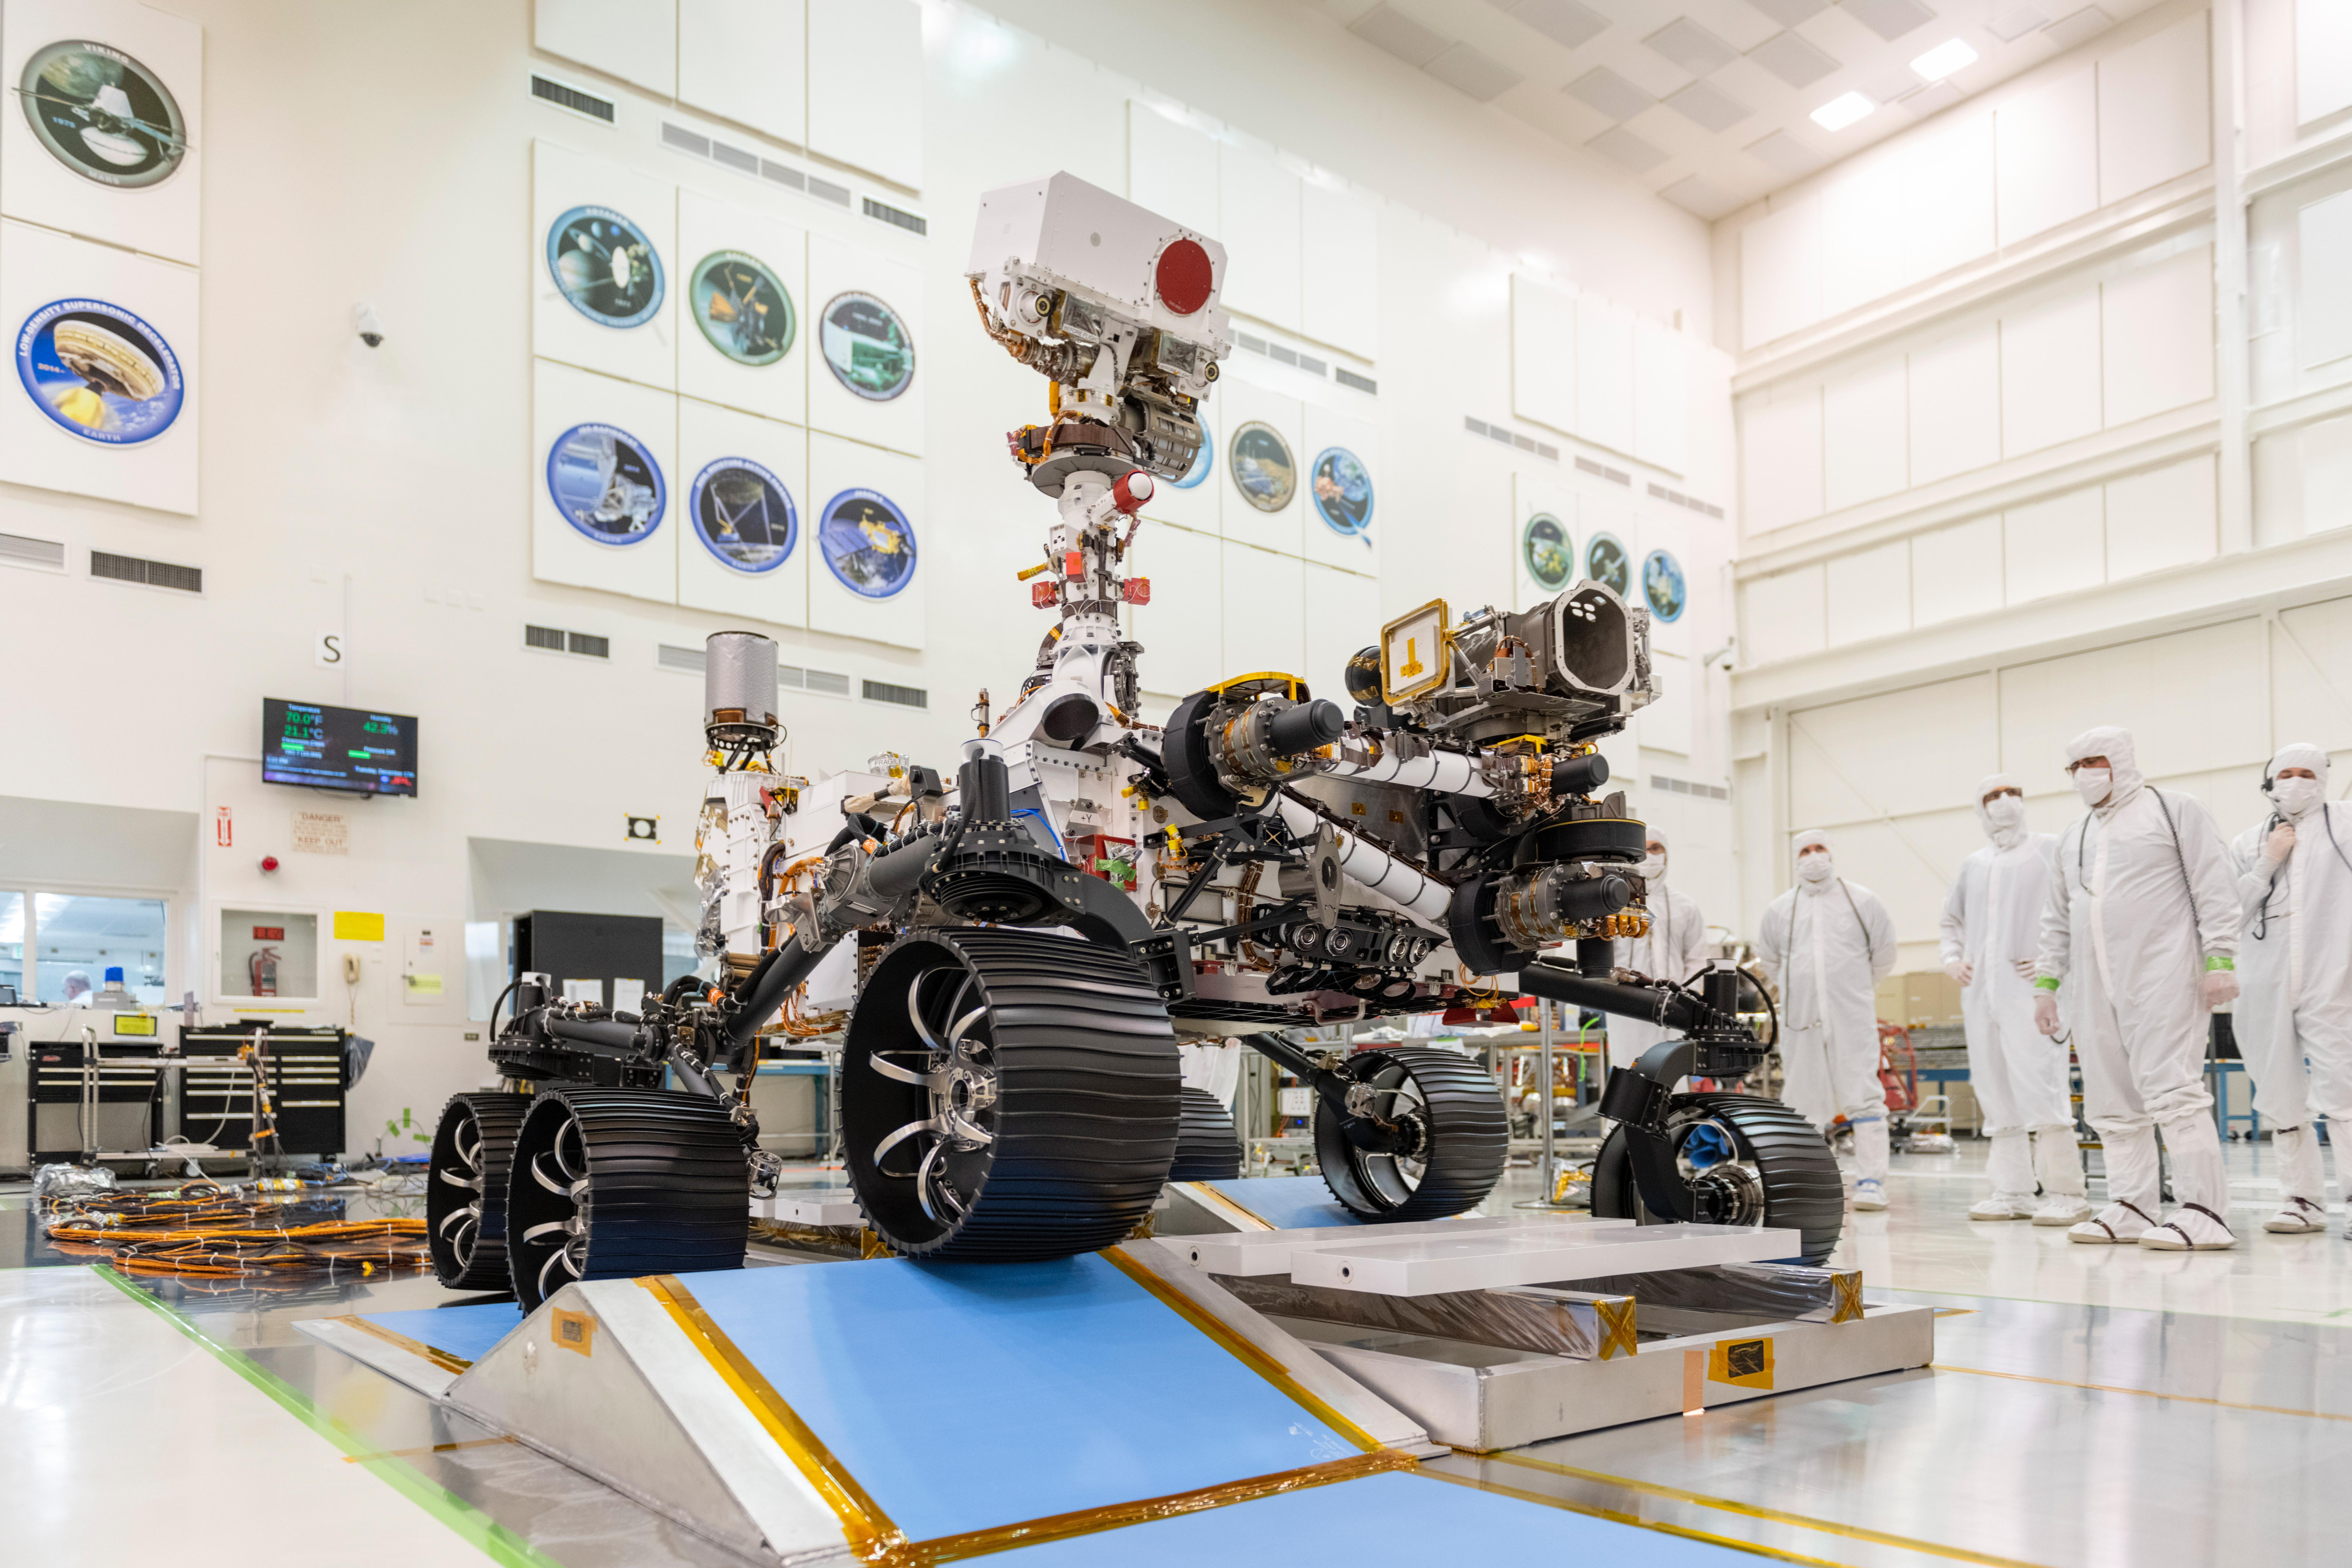 In a clean room at NASAs Jet Propulsion Laboratory in Pasadena, California, engineers observed the first driving test for NASAs Mars 2020 rover on Dec. 17, 2019.